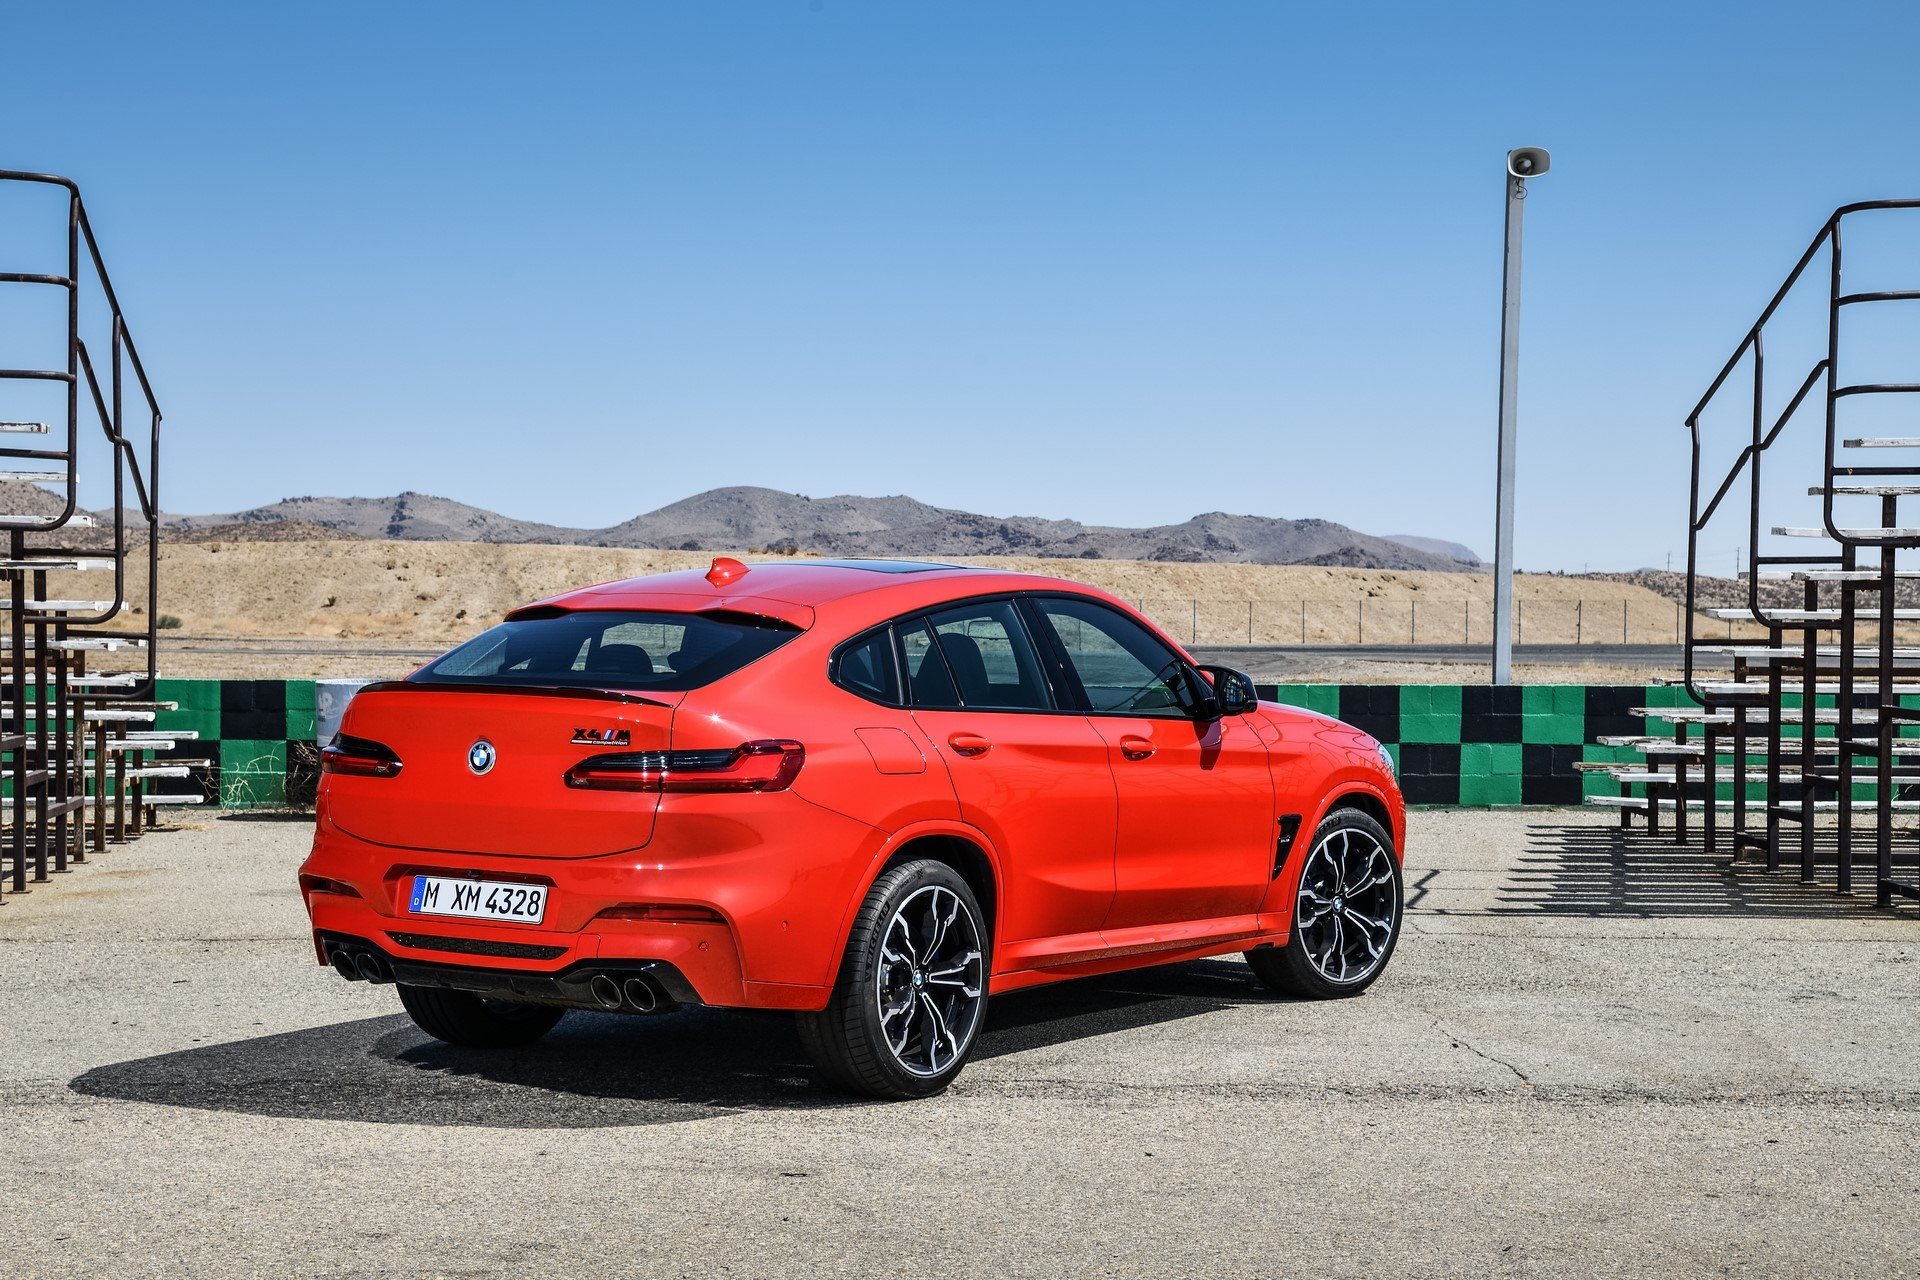 BMW X3 M and X4 M 2019 (71)